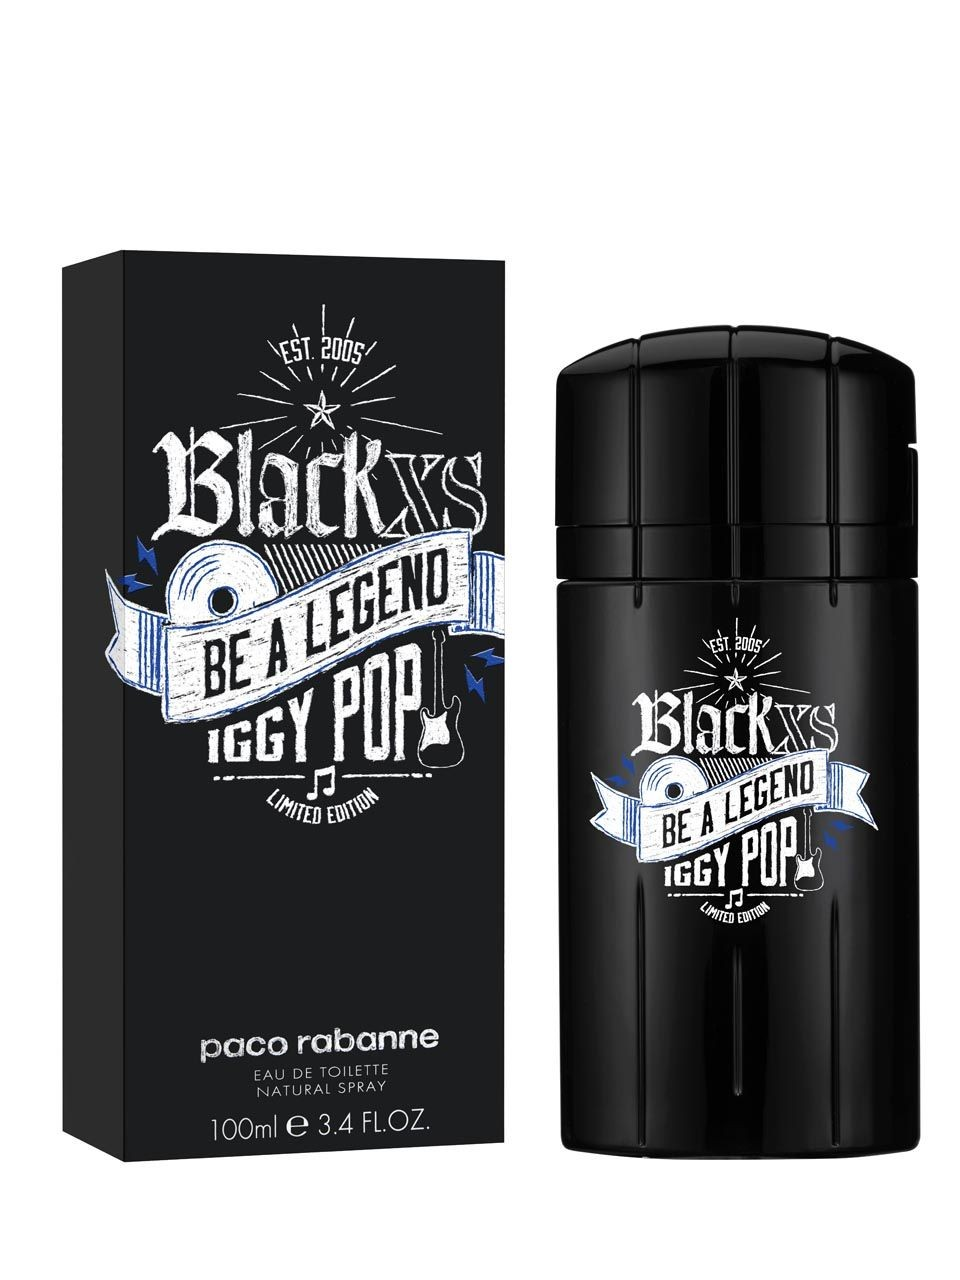 Paco Rabanne XS Black Be a Legend Iggy Pop